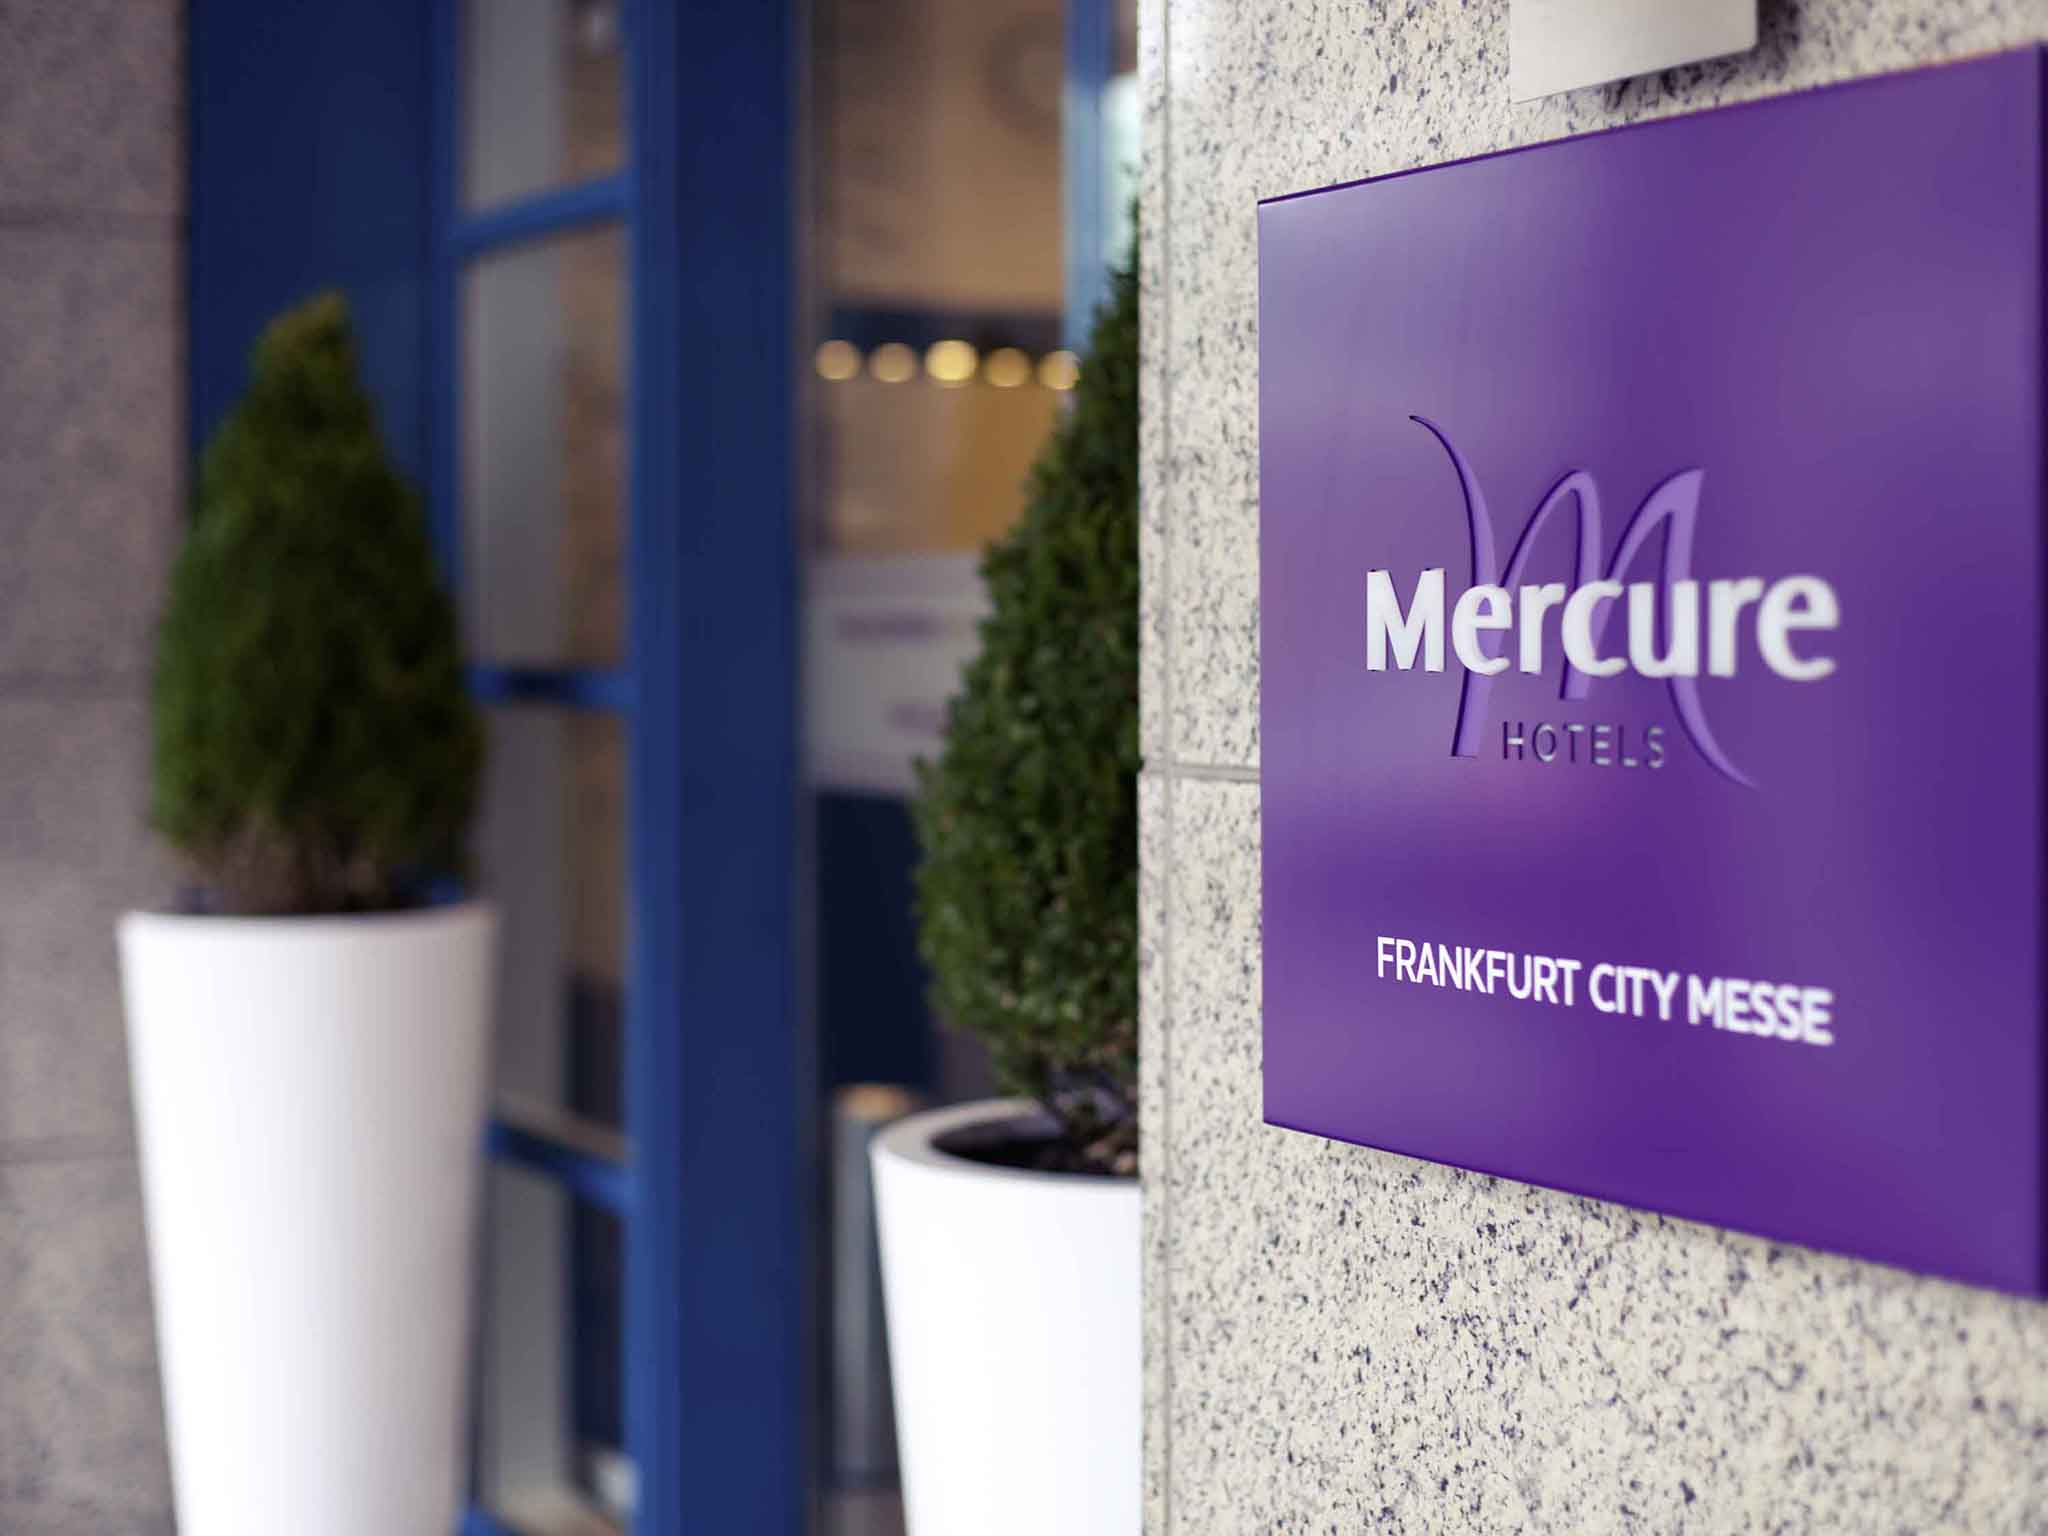 Hôtel - Mercure Hotel Frankfurt City Messe